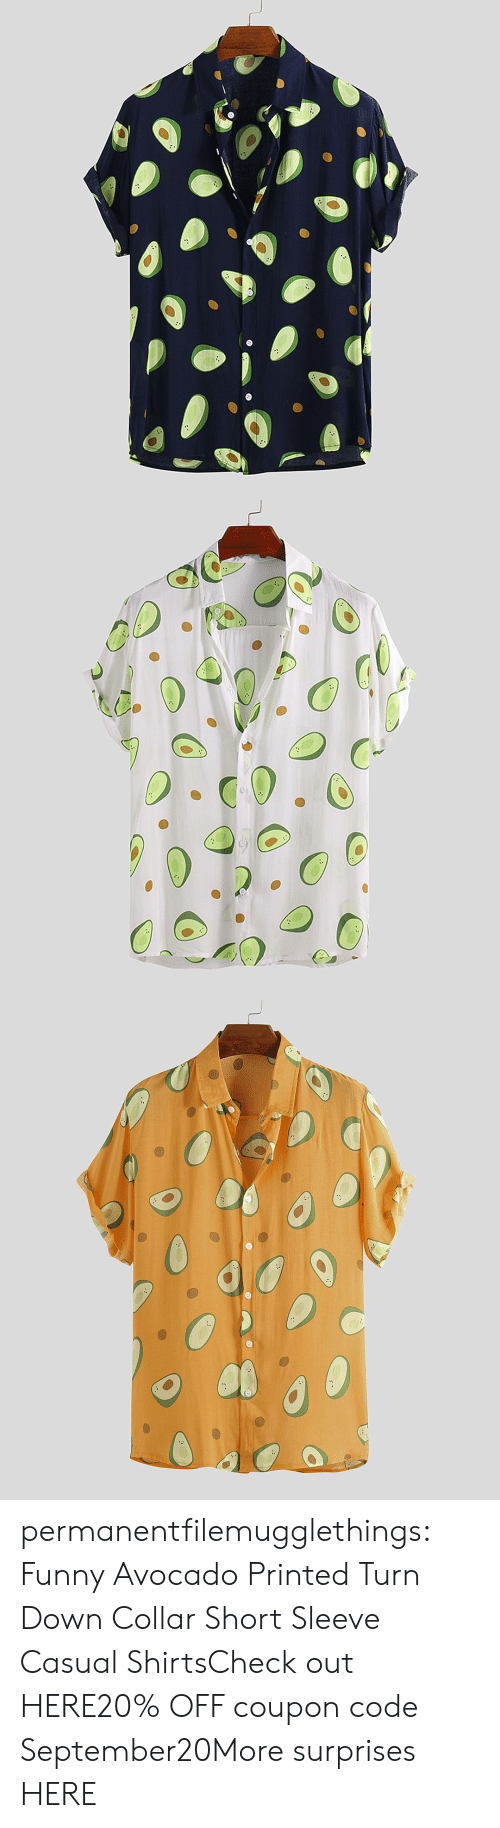 Avocado: permanentfilemugglethings:  Funny Avocado Printed Turn Down Collar Short Sleeve Casual ShirtsCheck out HERE20% OFF coupon code:September20More surprises HERE